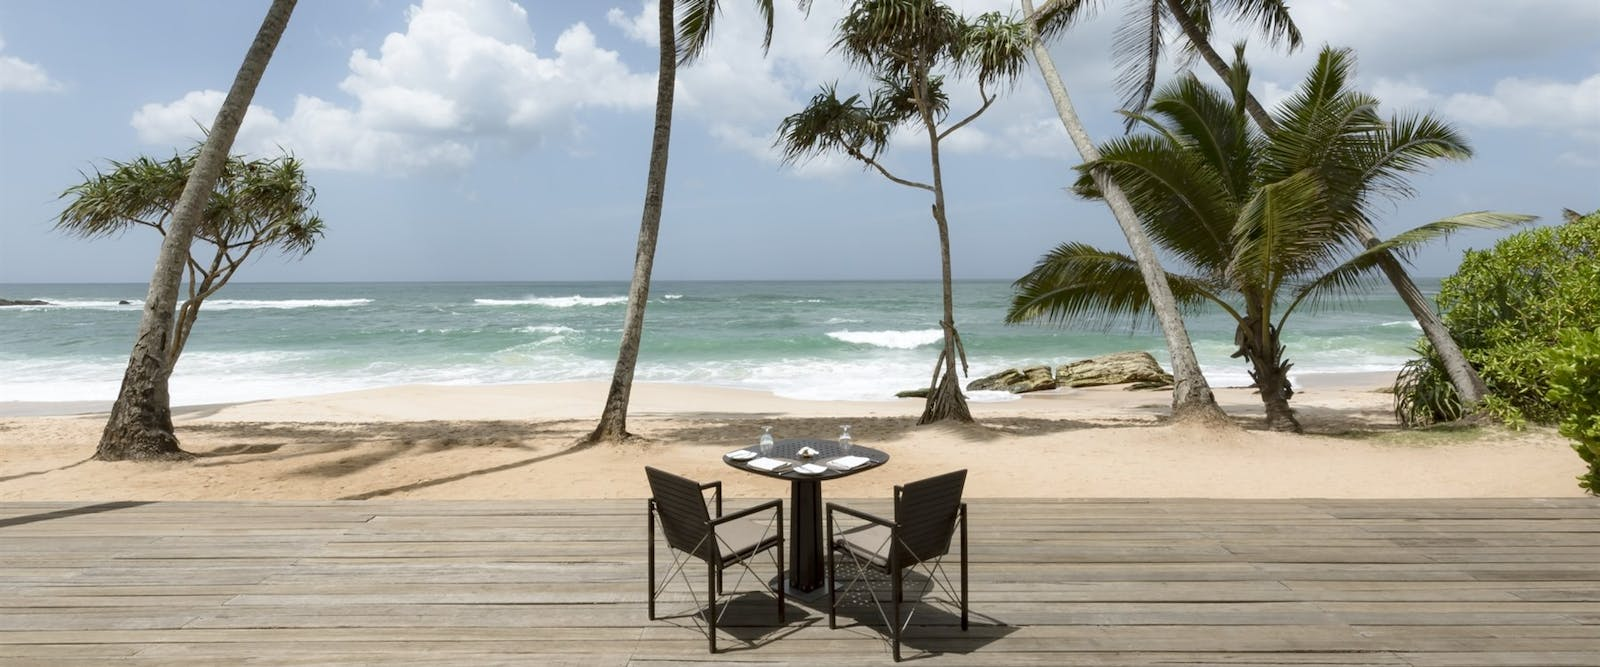 Al Fresco Dining at Amanwella, Sri Lanka